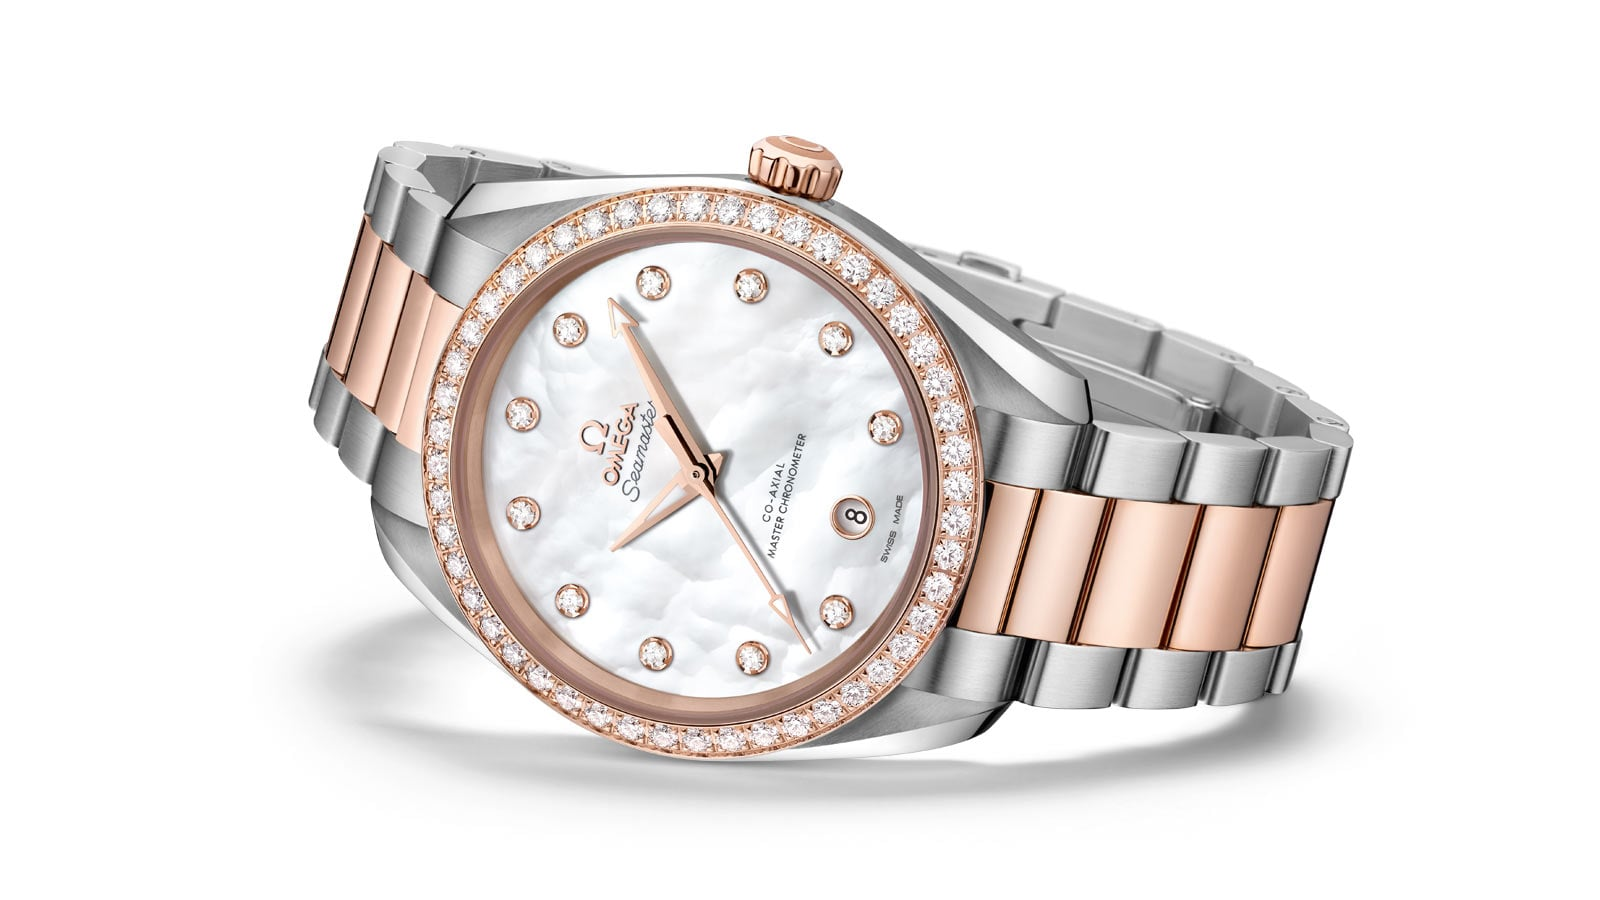 The Aqua Terra Ladies' Collection watch, with its stainless steel and rose gold band, its diamond mounted bezel and its mother-of-pearl dial